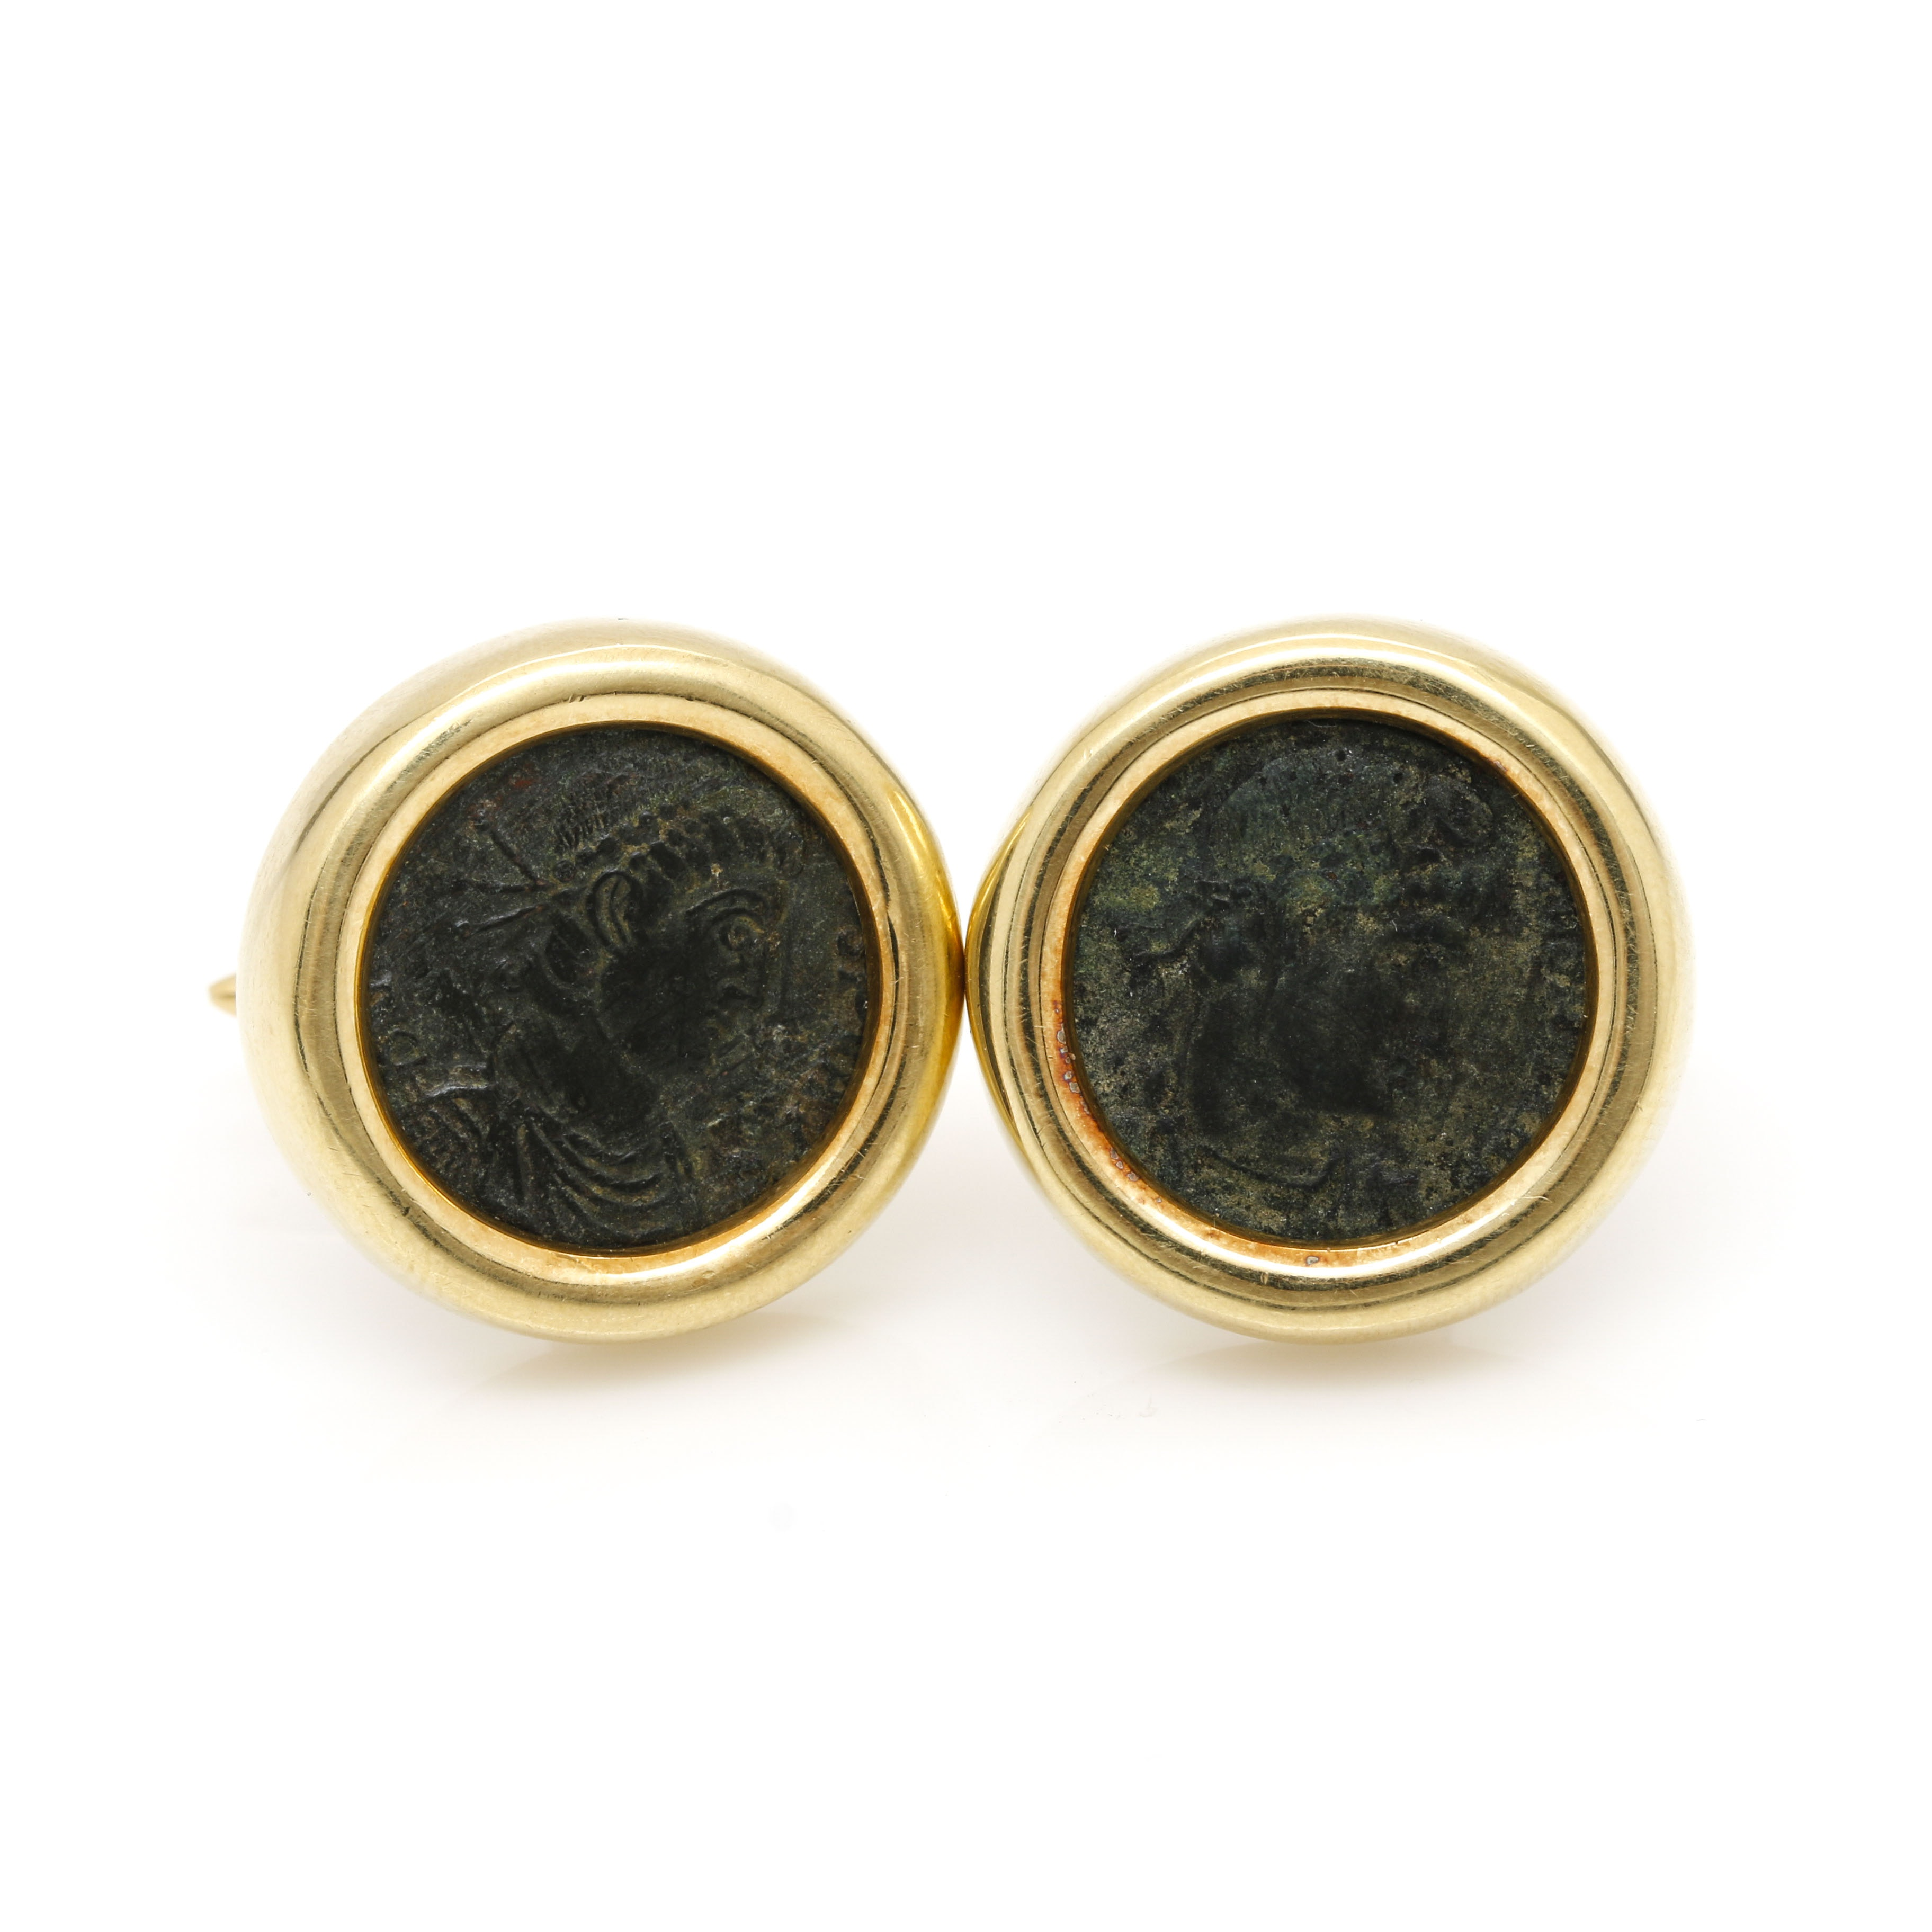 18K Yellow Gold Roman Imperial Copper AE Coin Cufflinks